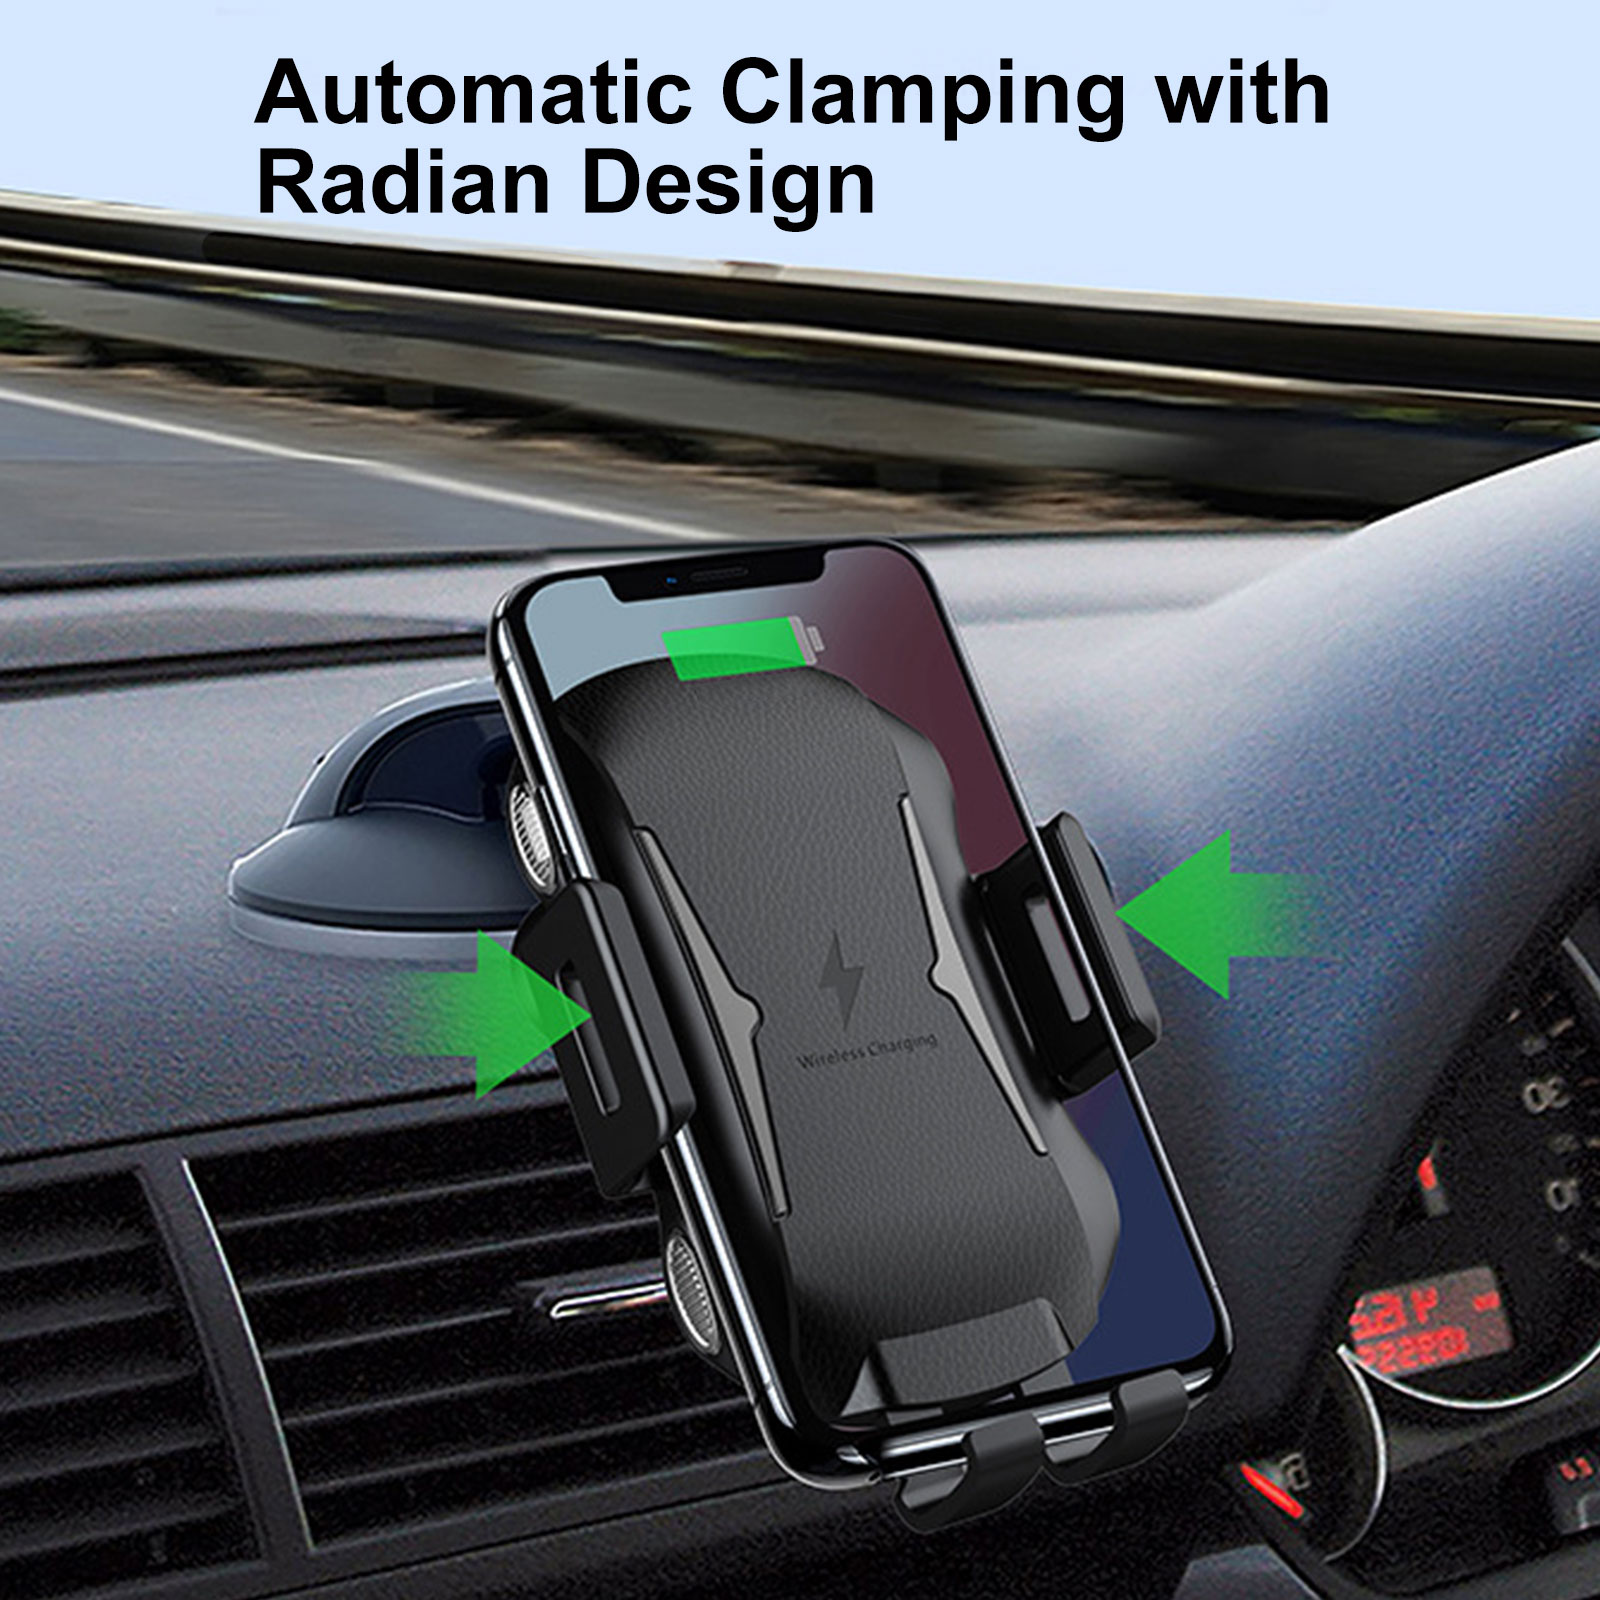 Auto clamping wireless car charger castrol power 1 r40